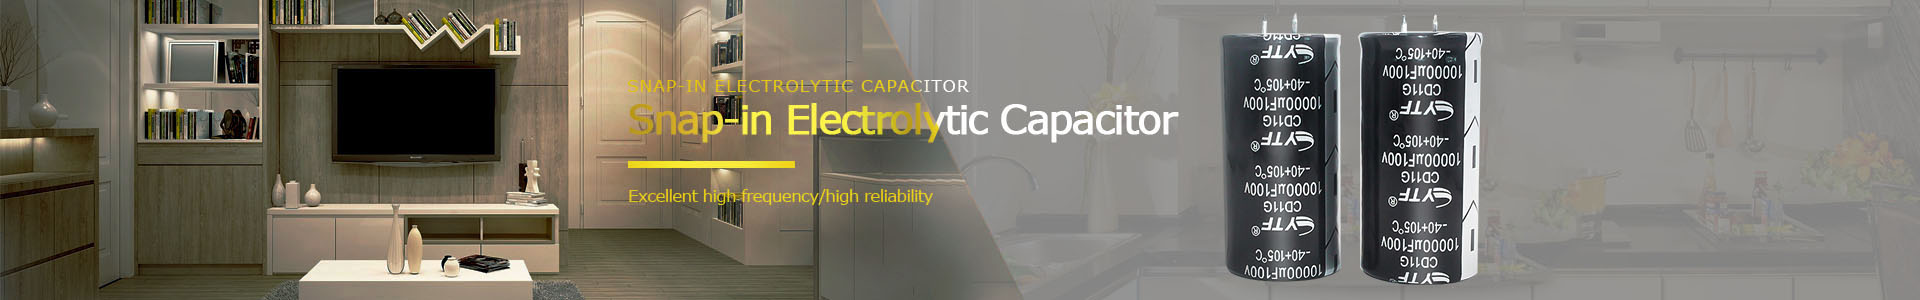 Black High Capacity Snap-in Electrolytic Capacitor